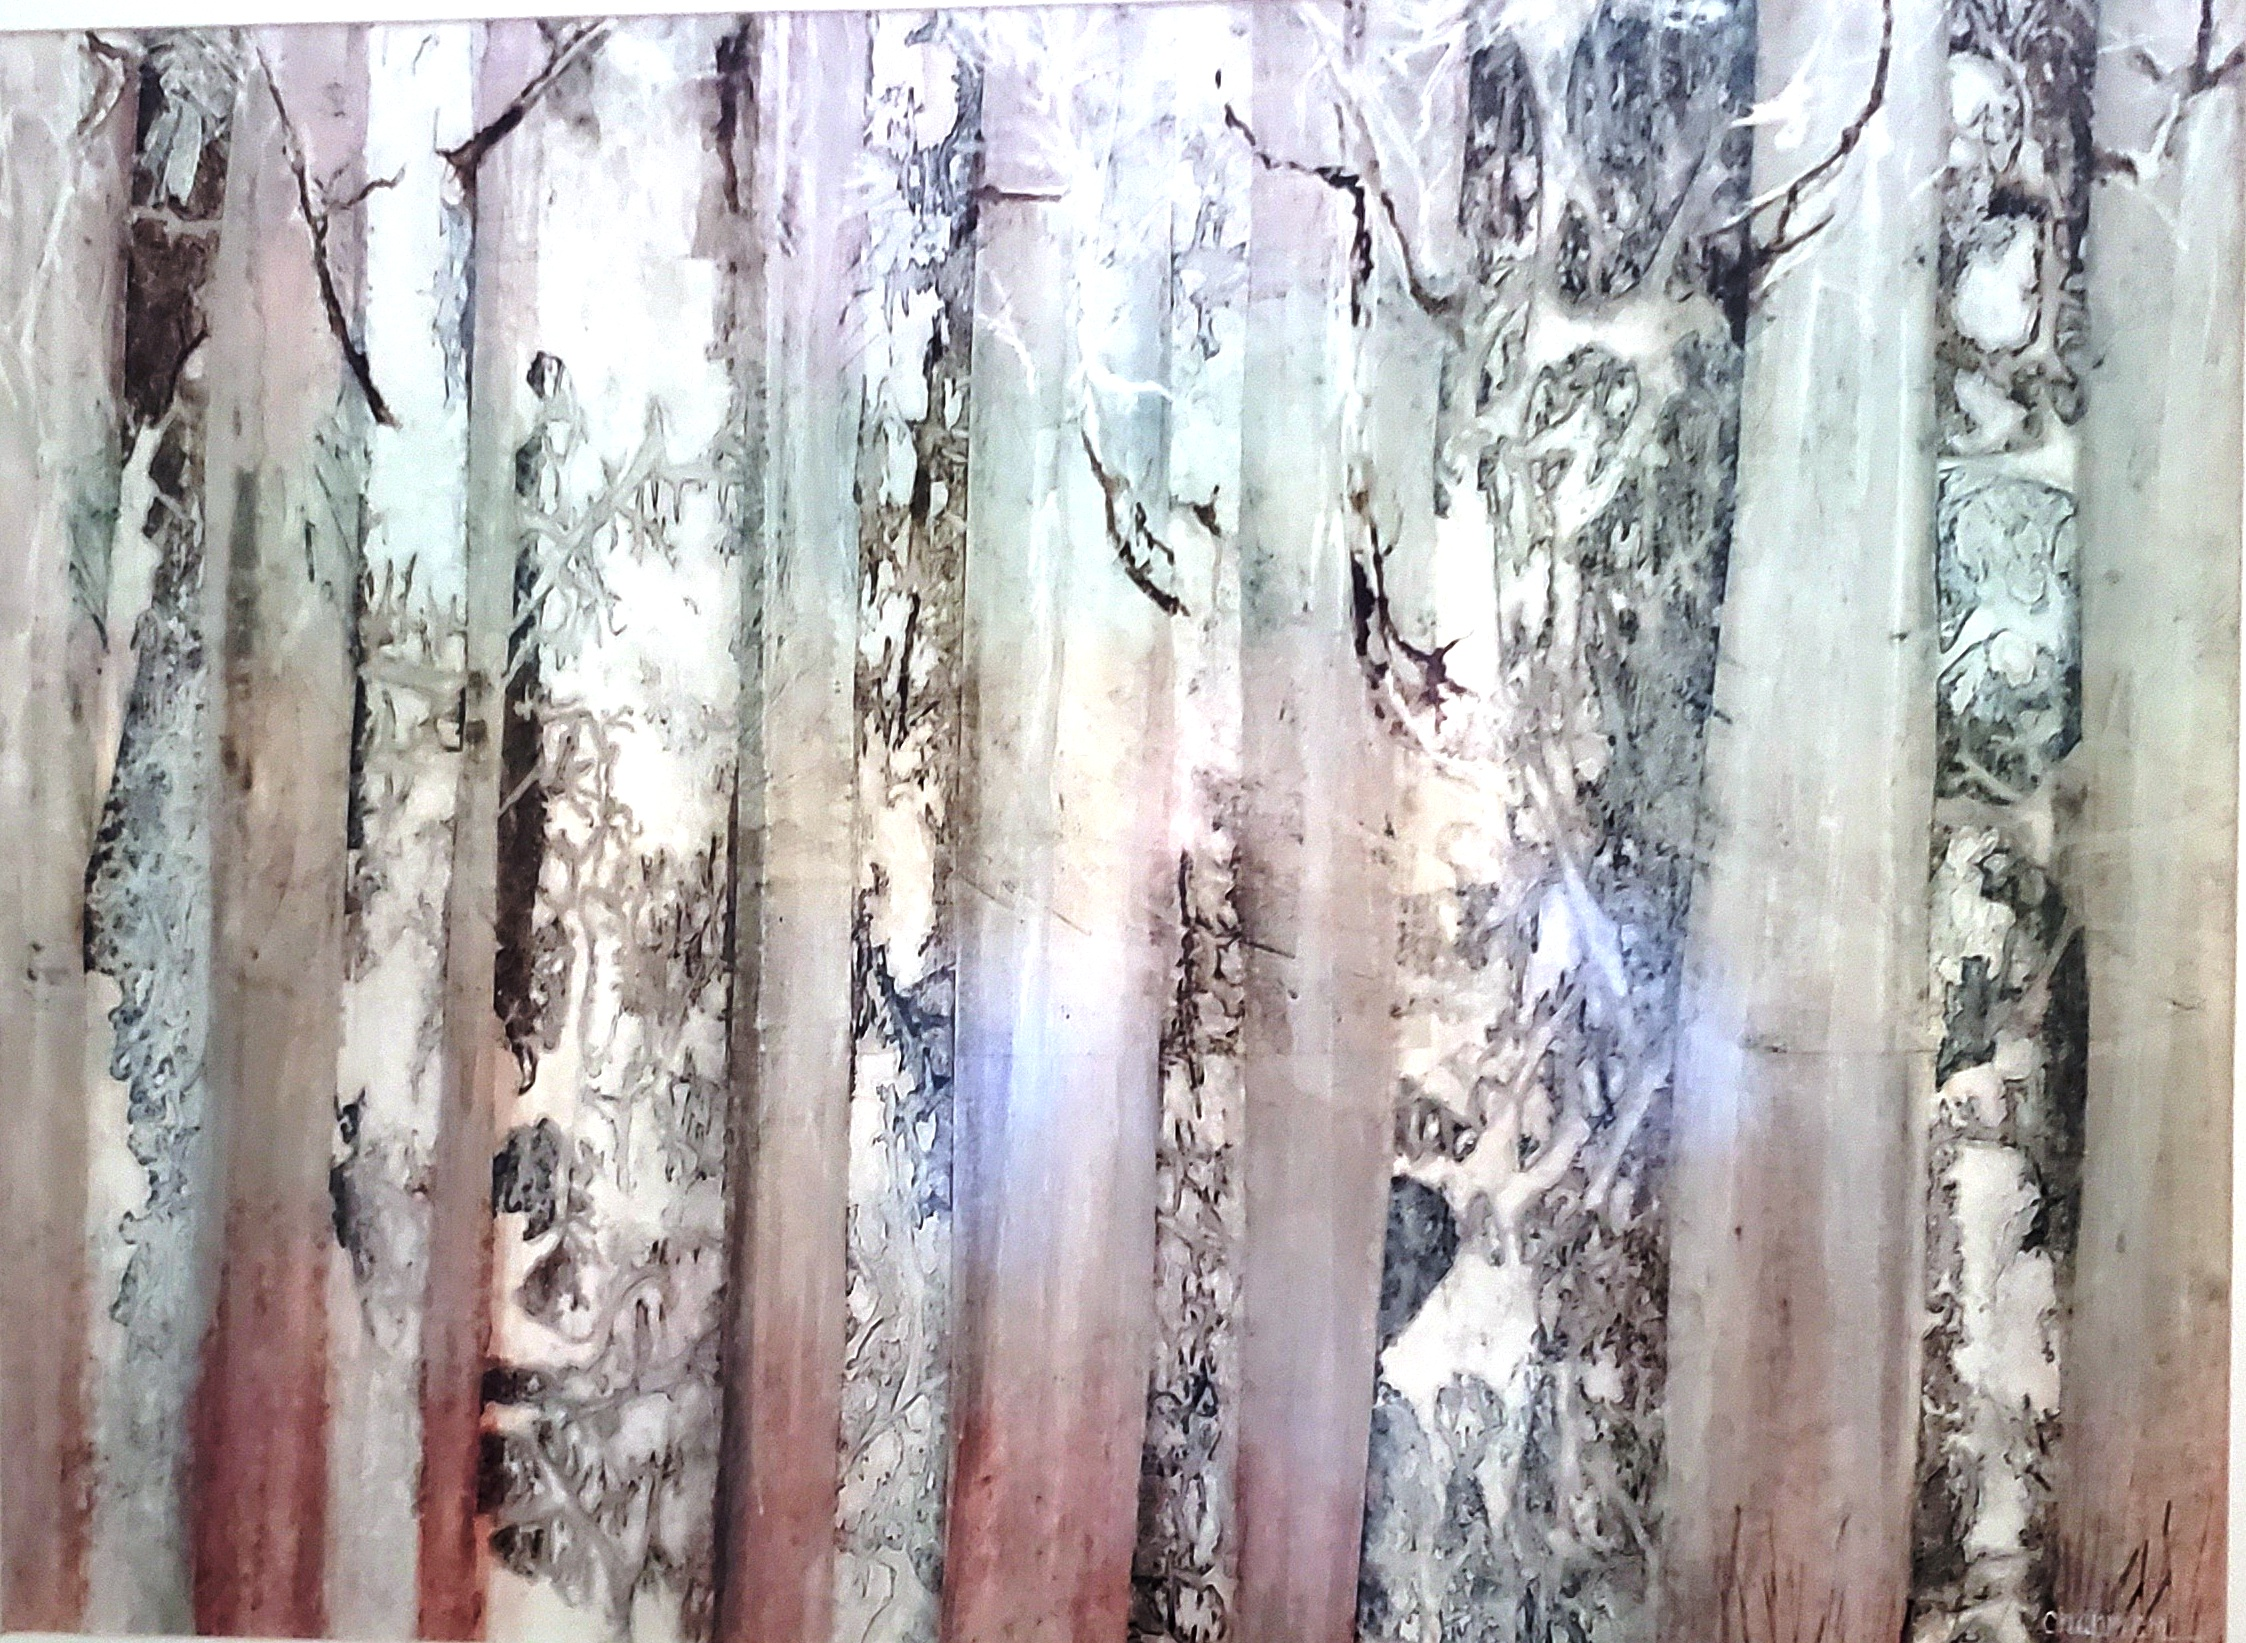 Winter Birches artwork by Kenneth CHAPMAN - art listed for sale on Artplode